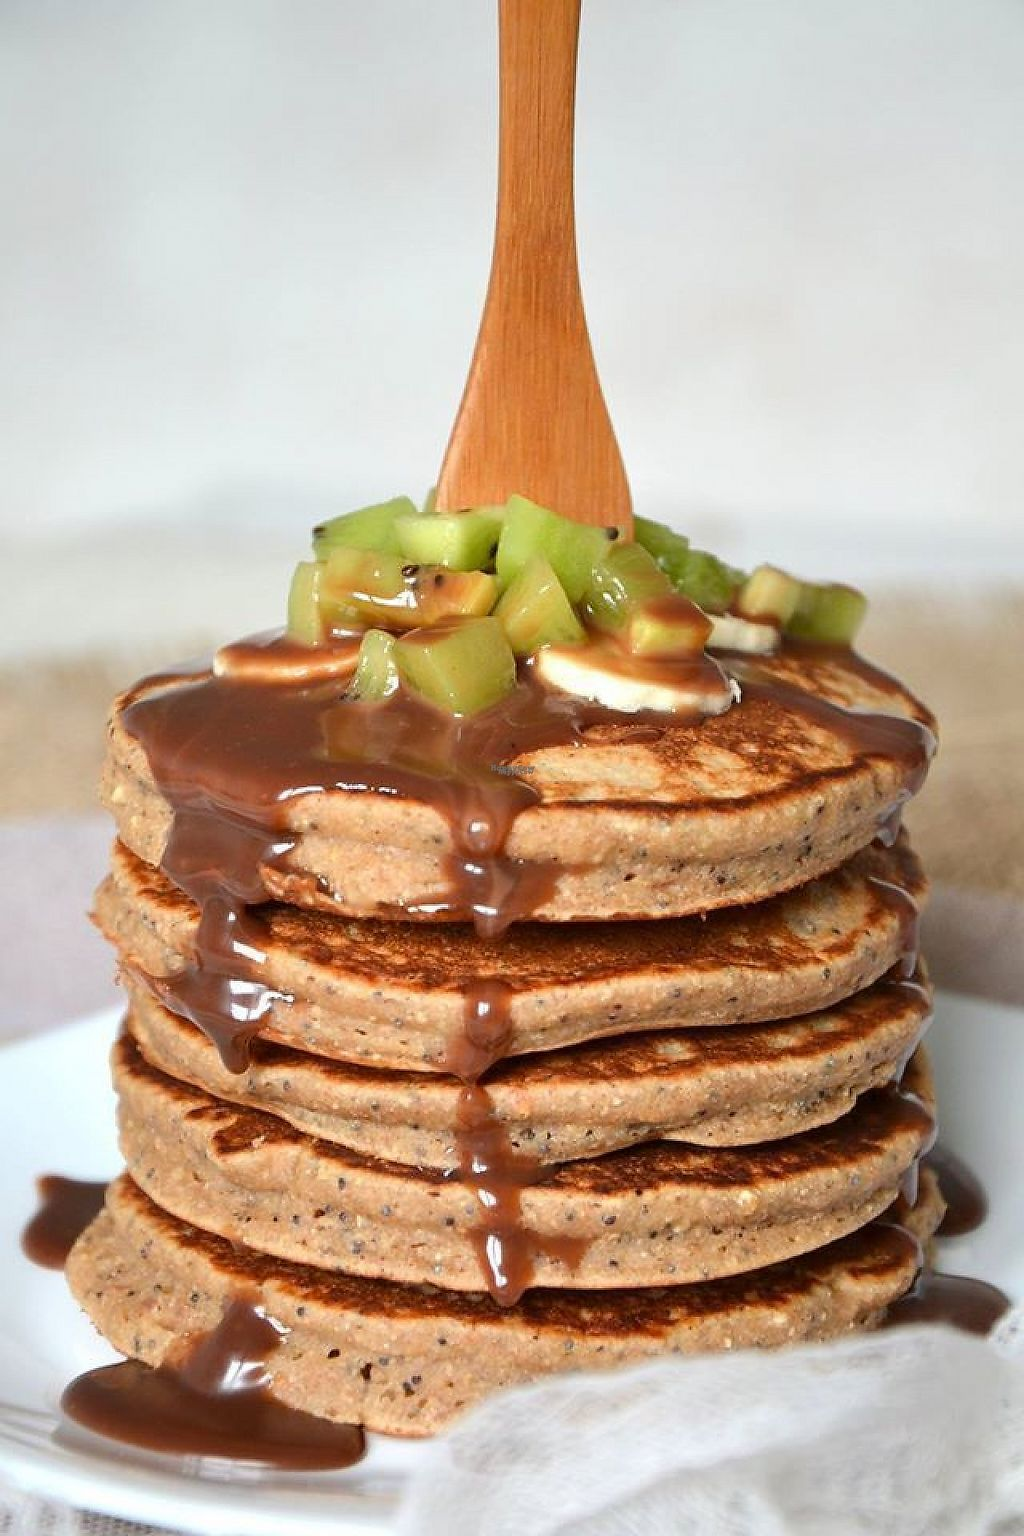 """Photo of La Vie Claire  by <a href=""""/members/profile/community"""">community</a> <br/>vegan pancakes  <br/> February 4, 2017  - <a href='/contact/abuse/image/68782/221823'>Report</a>"""